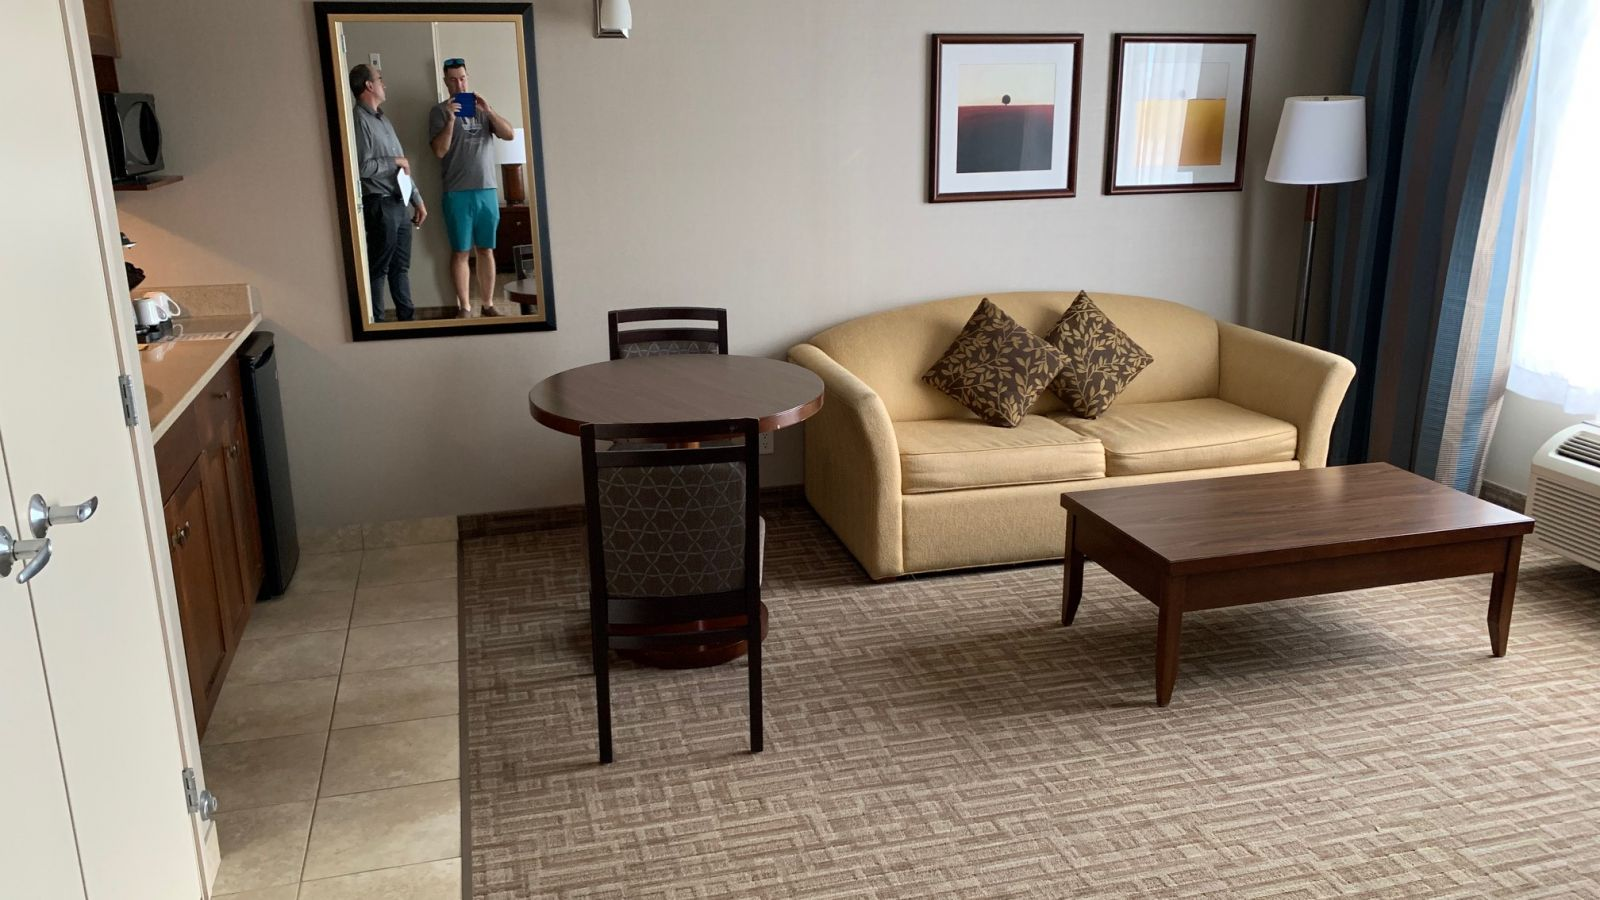 King Suite room - great for groups